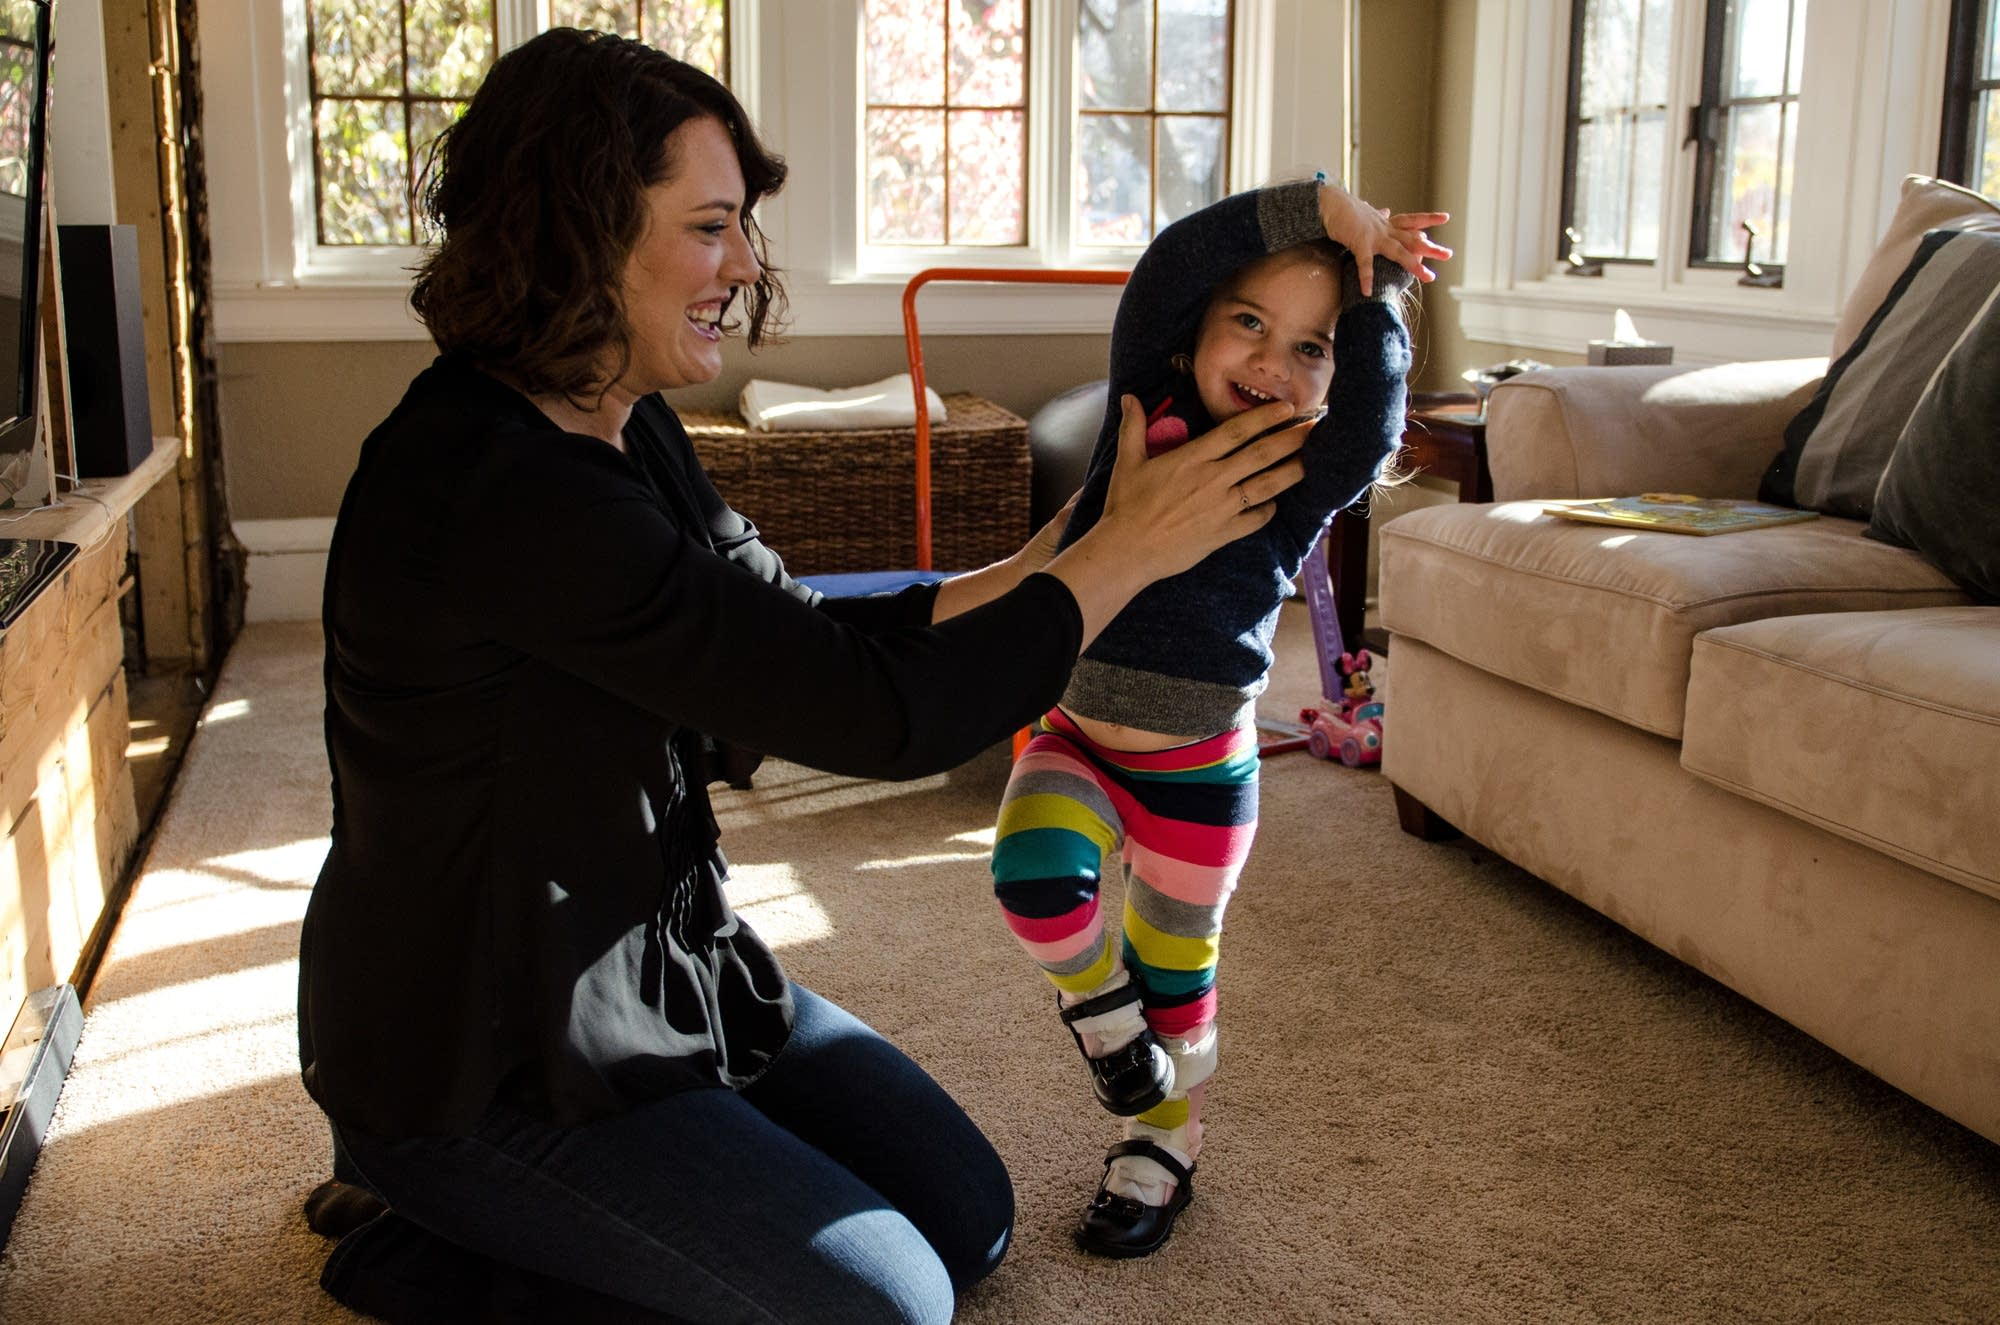 Leah Henrikson and her daughter Vivian play.